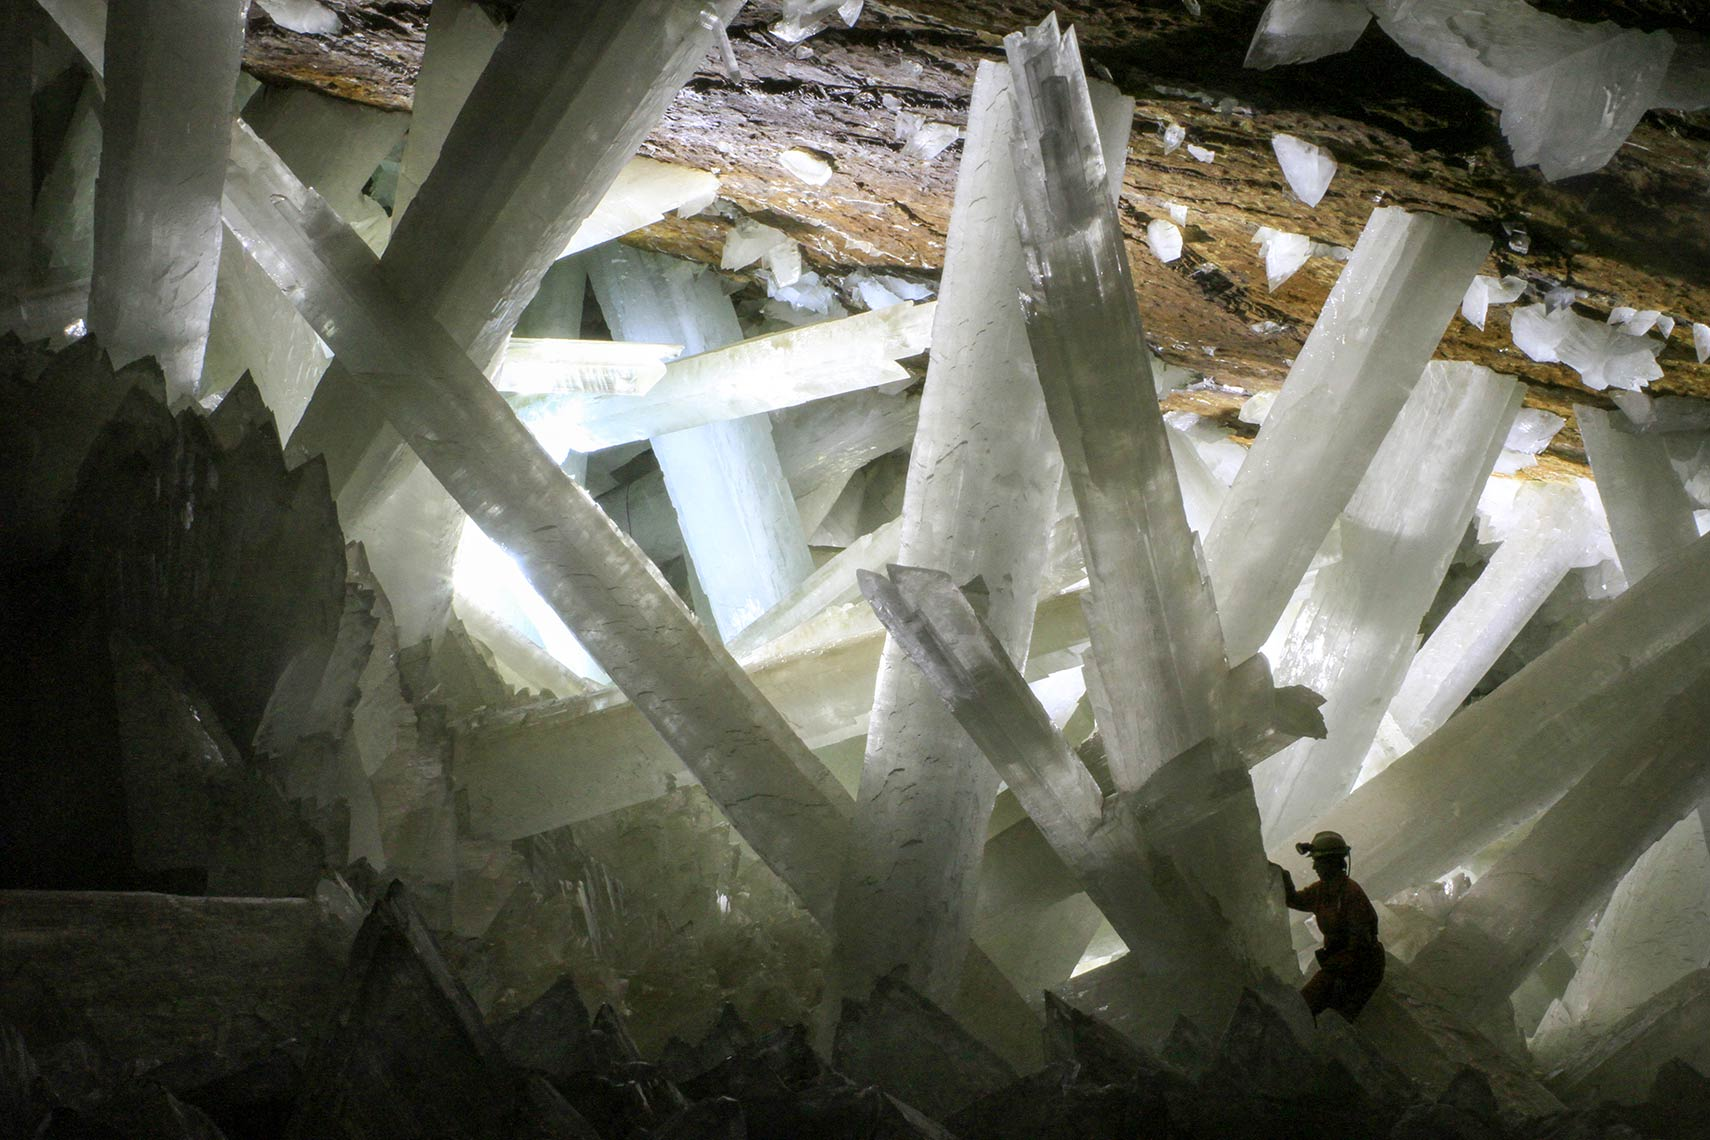 Gypsum crystals in the Naica cave, Chihuahua, Mexico